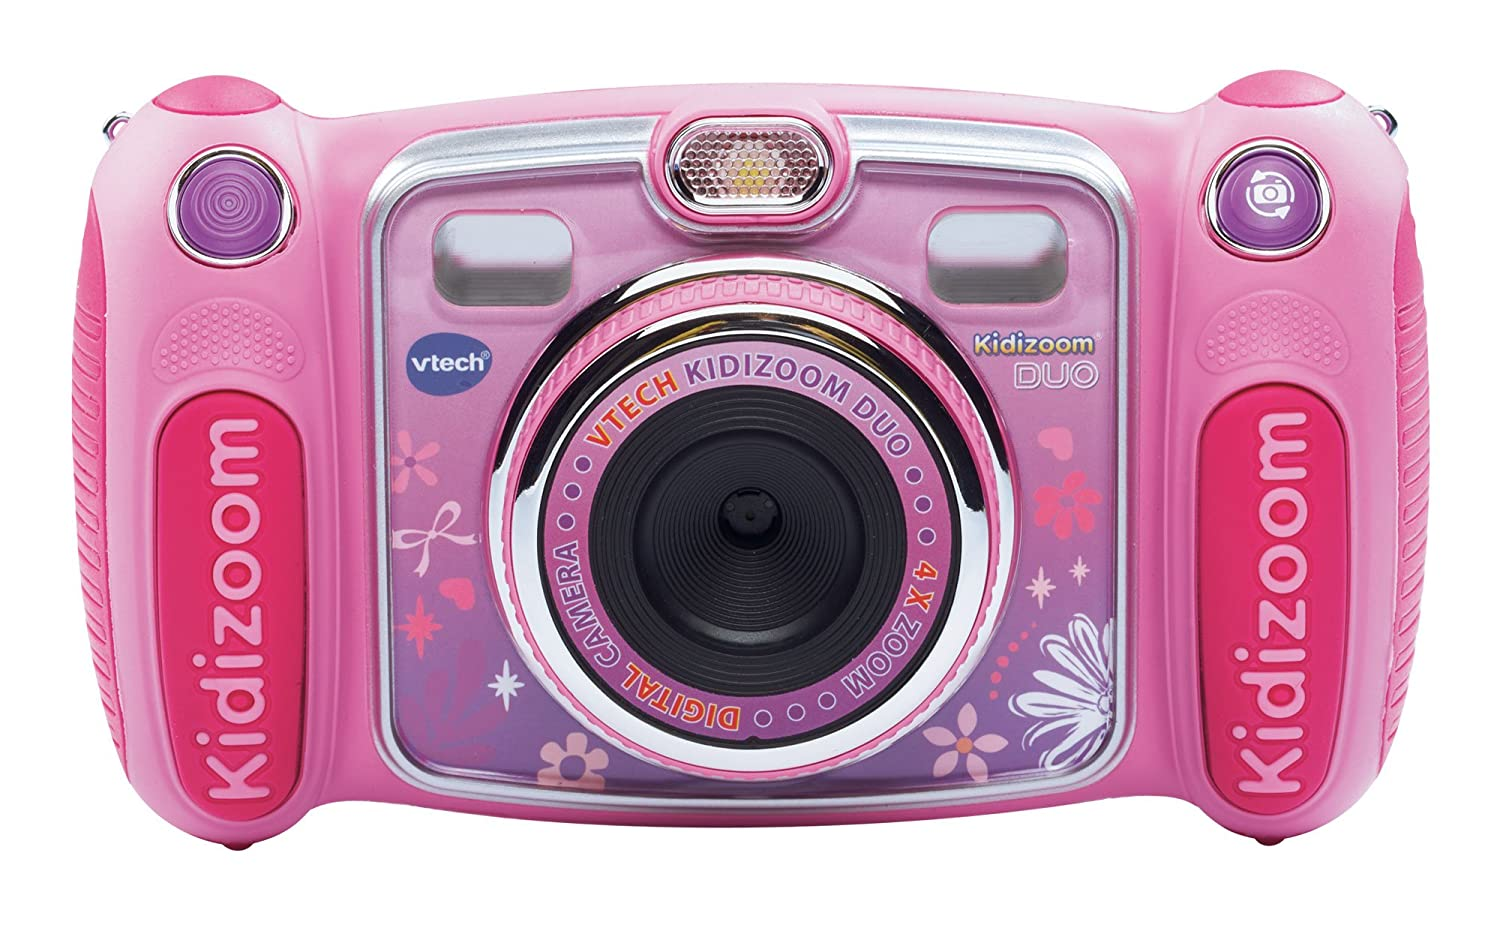 Vtech Kidizoom Duo Pink 170853